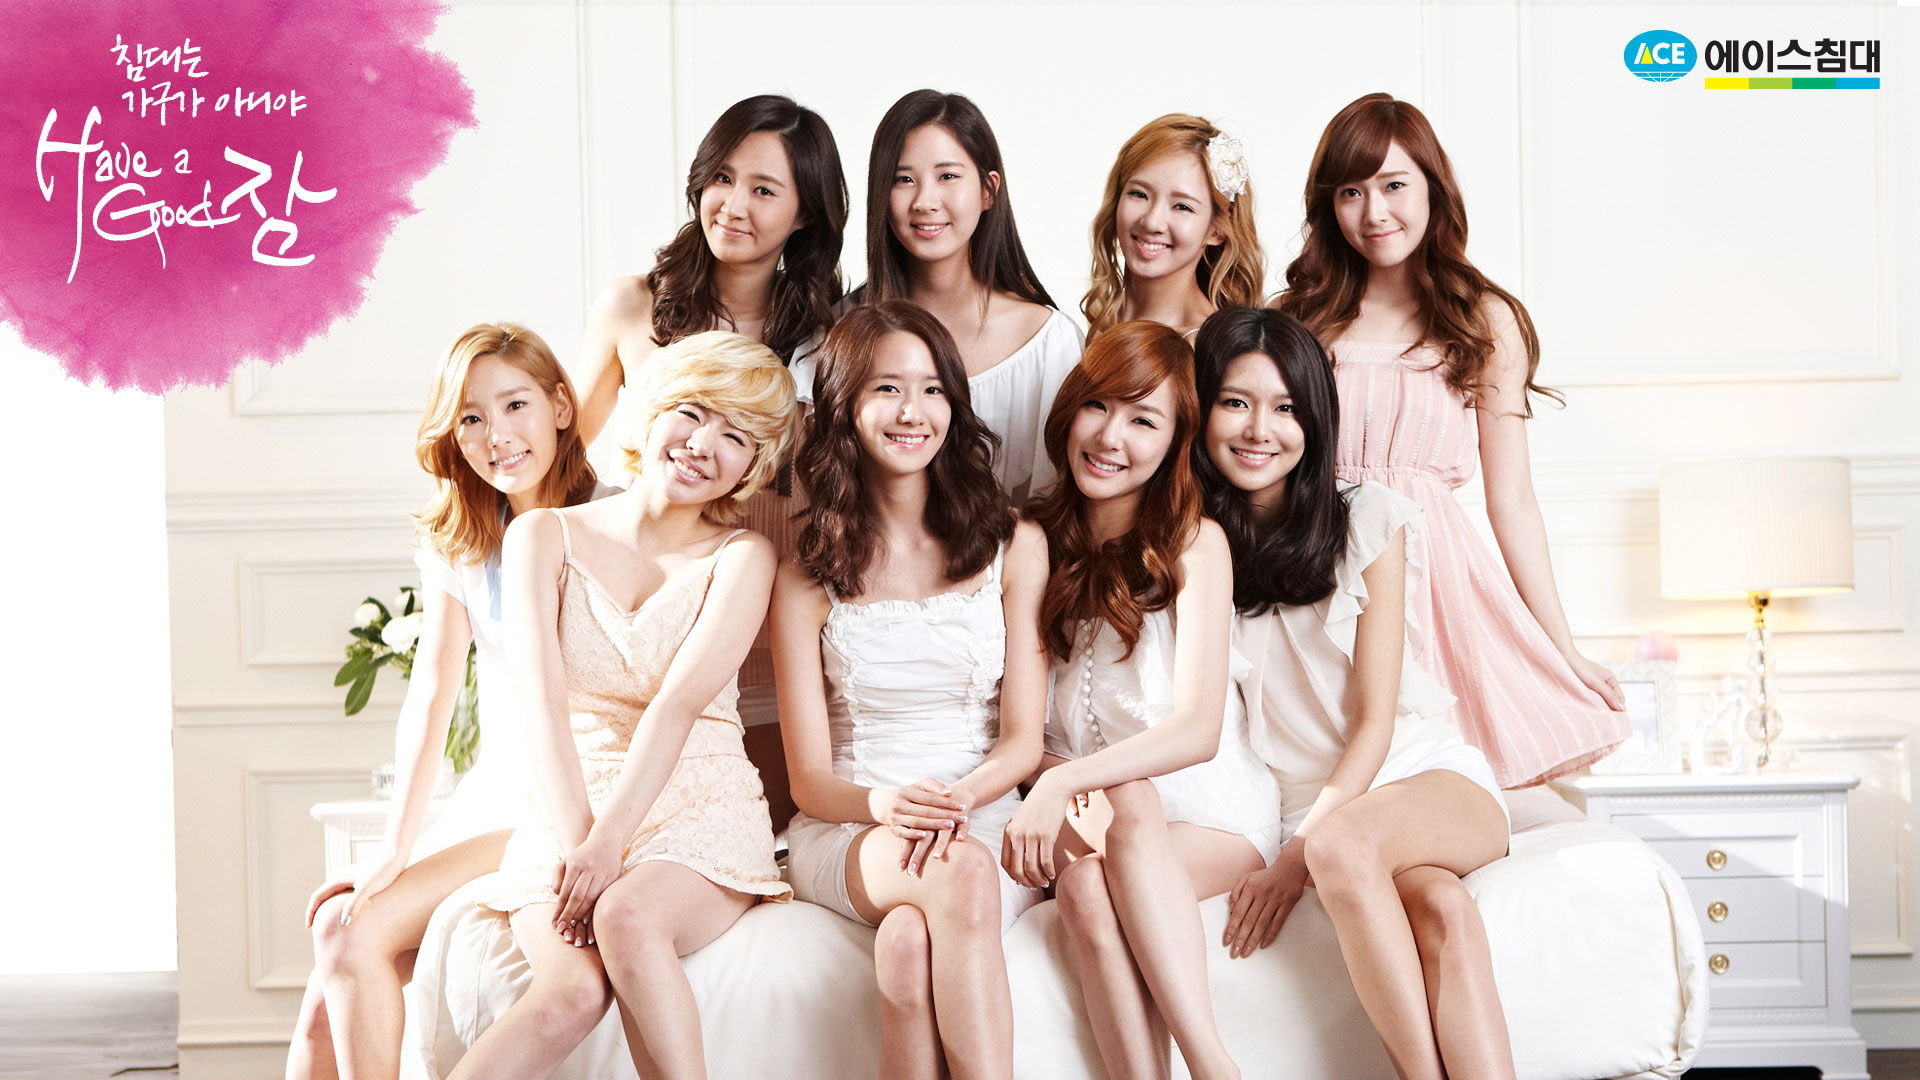 SNSD Pics - Girls' Generation (SNSD) Photos